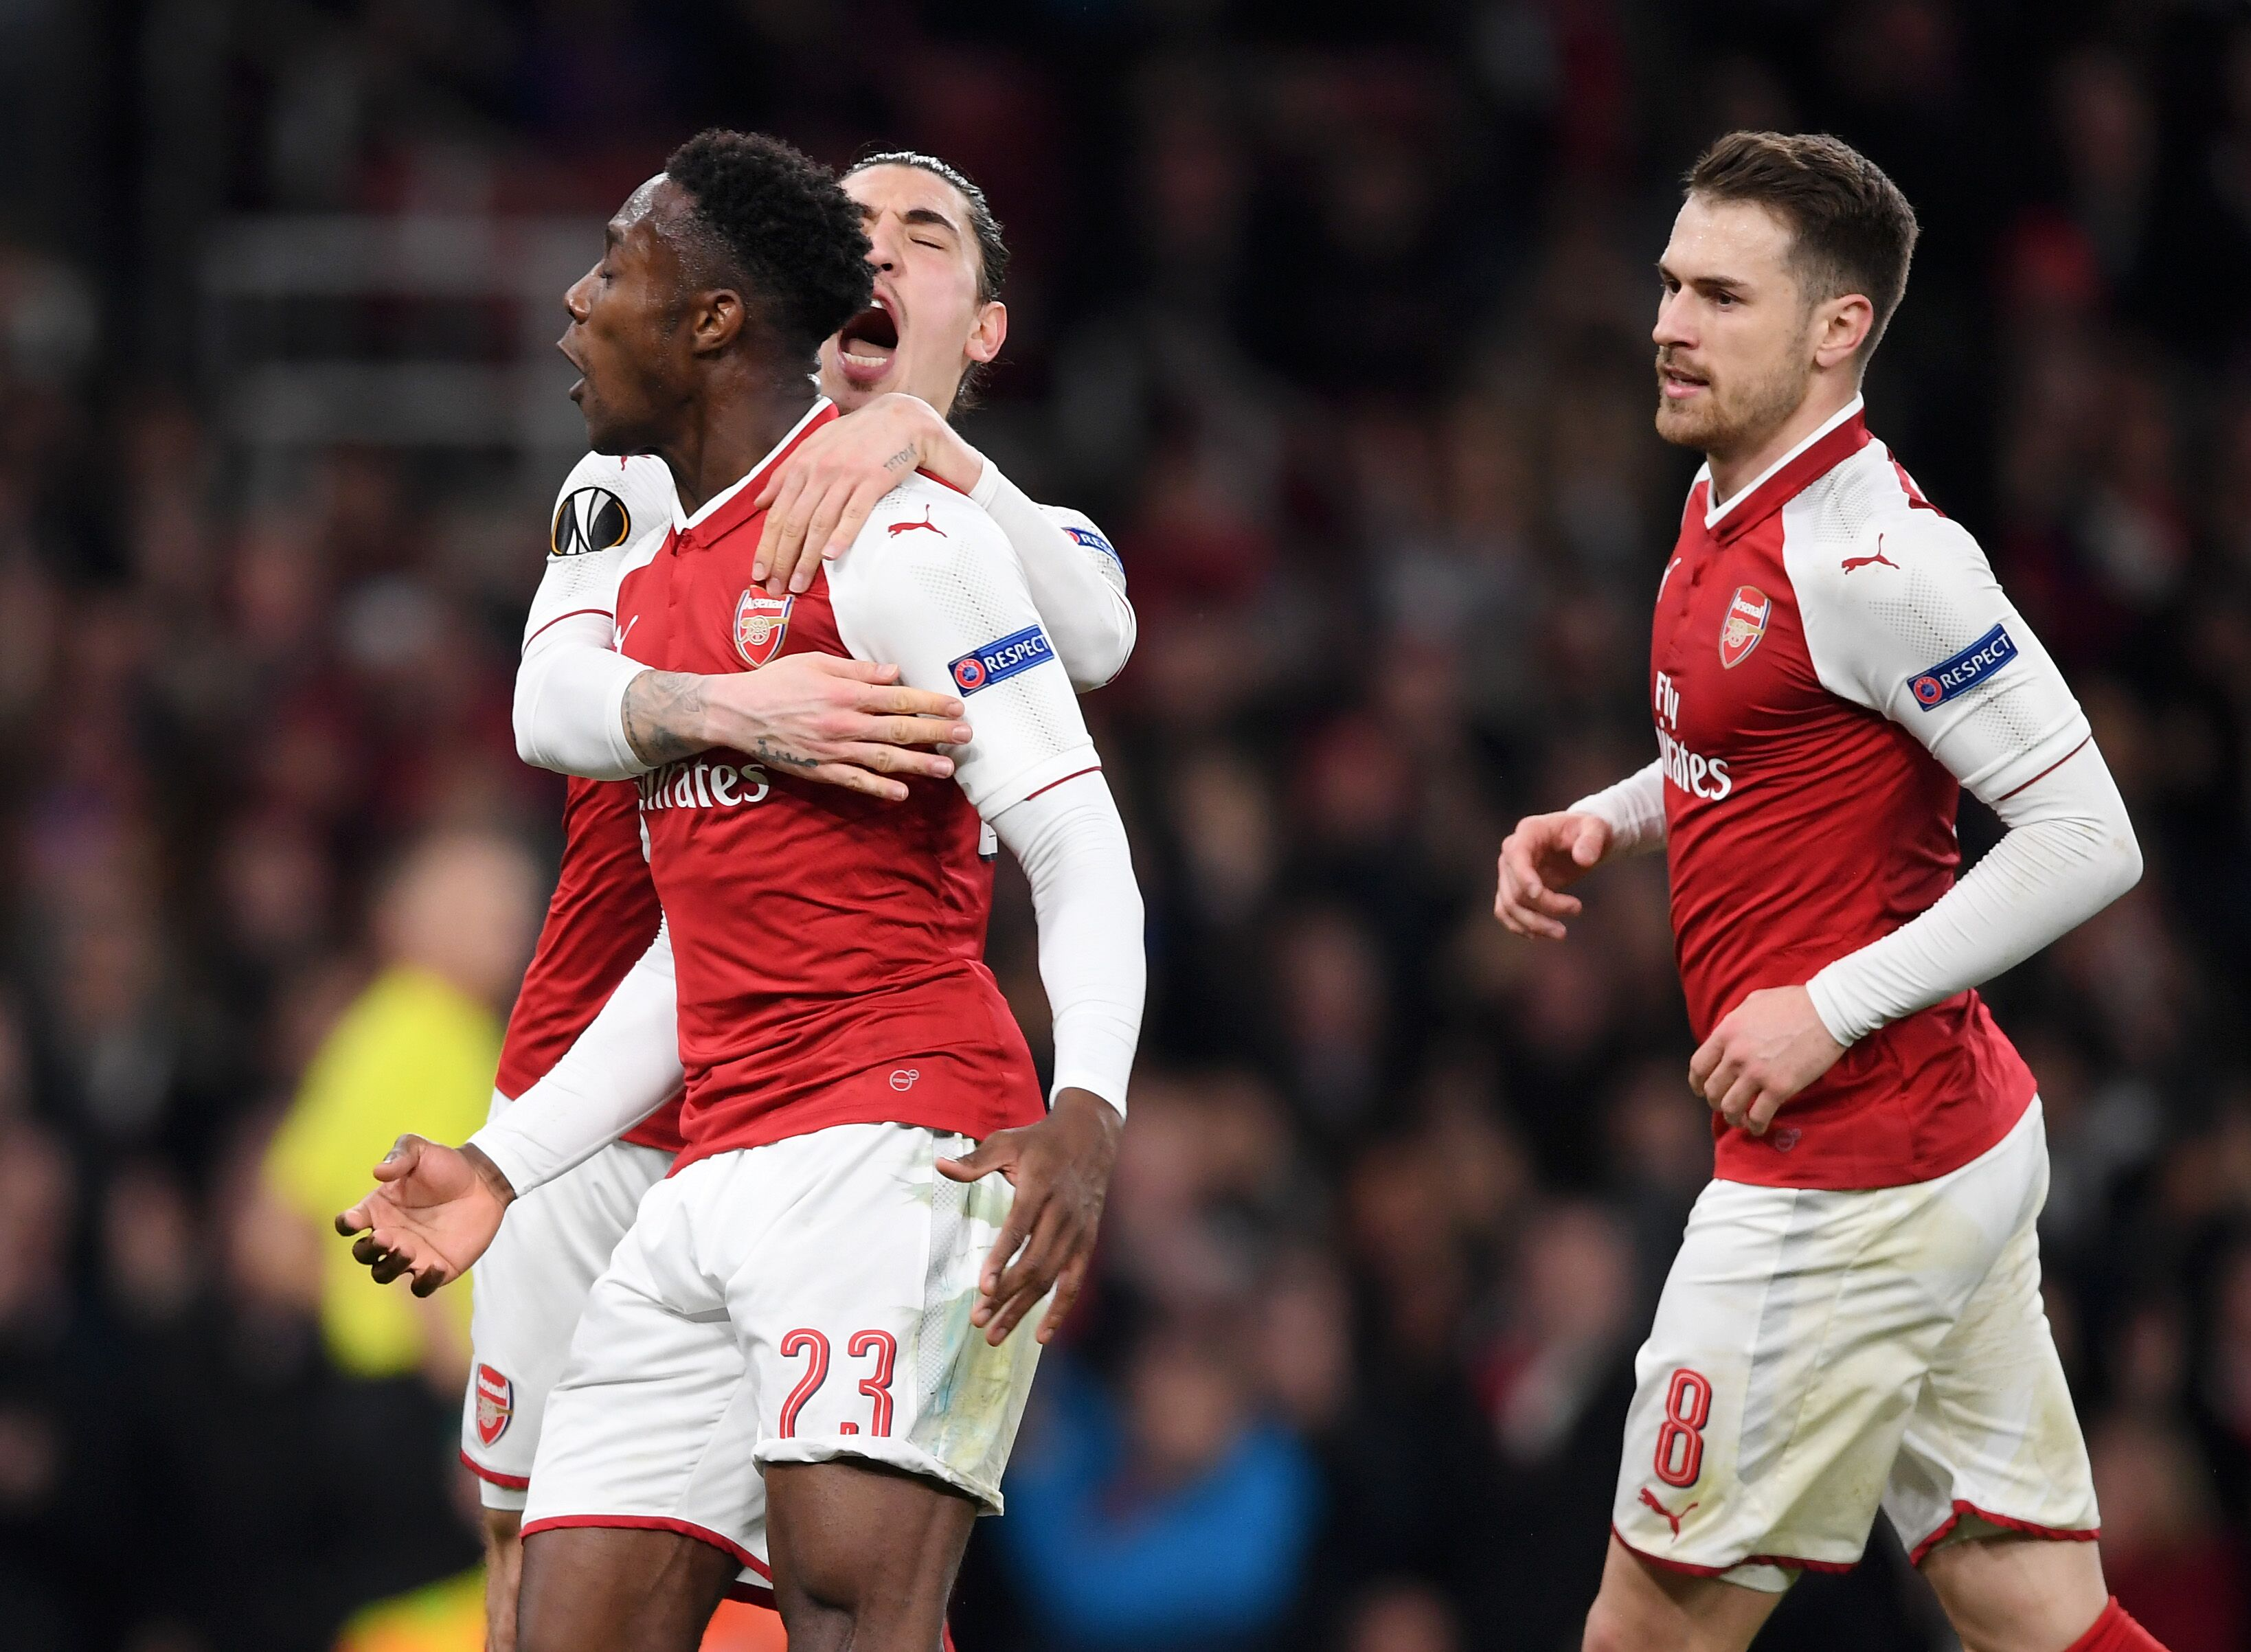 Uefa Europa Picture: Arsenal: Europa League Draw Offers Growing Potential